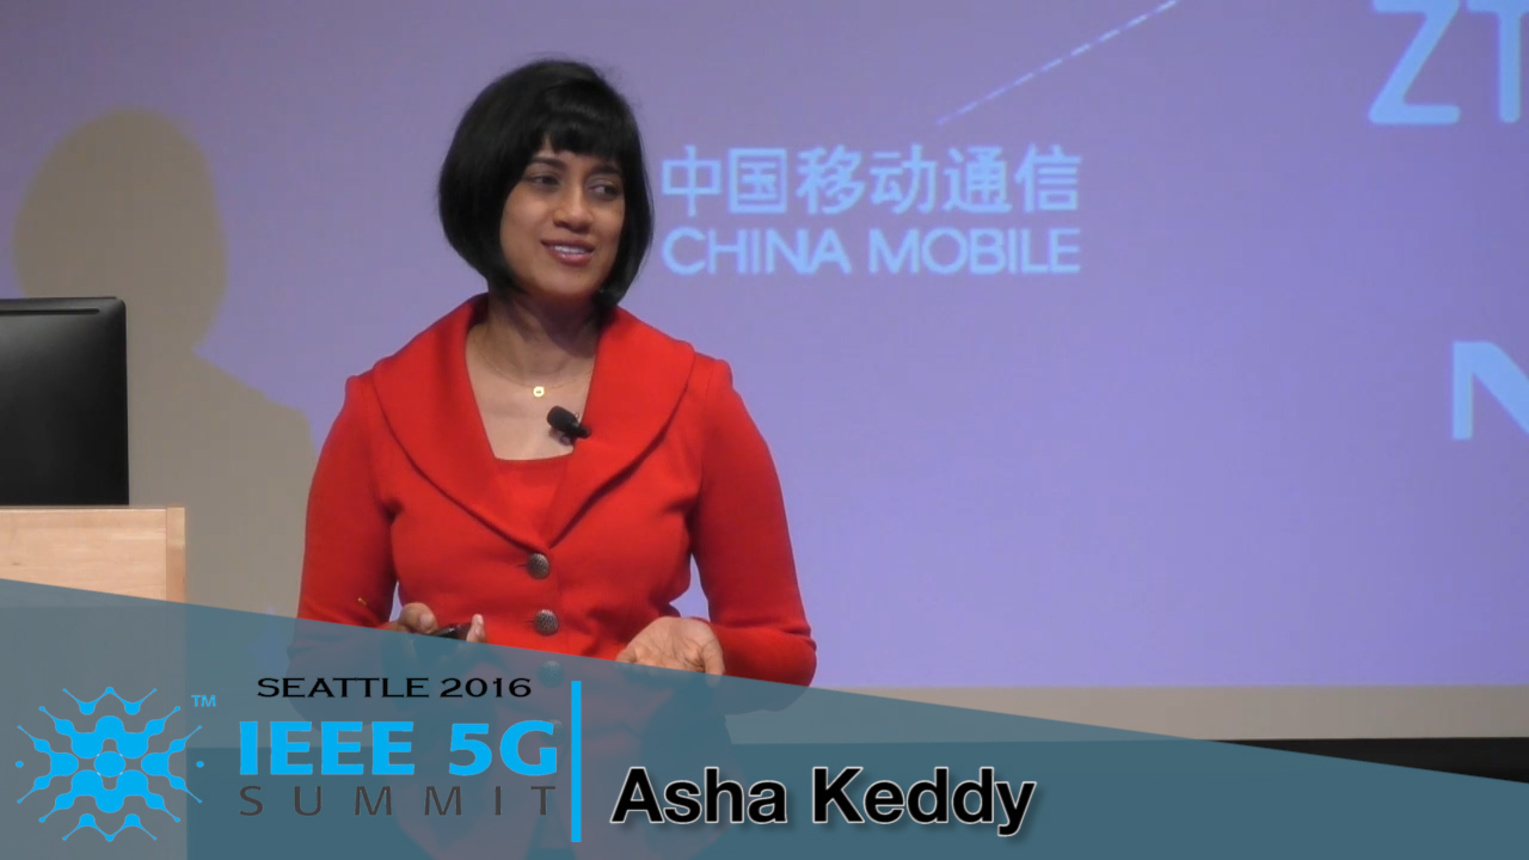 5G: A Transformative Force in Wireless Communications - 5G Summit, Seattle 2016